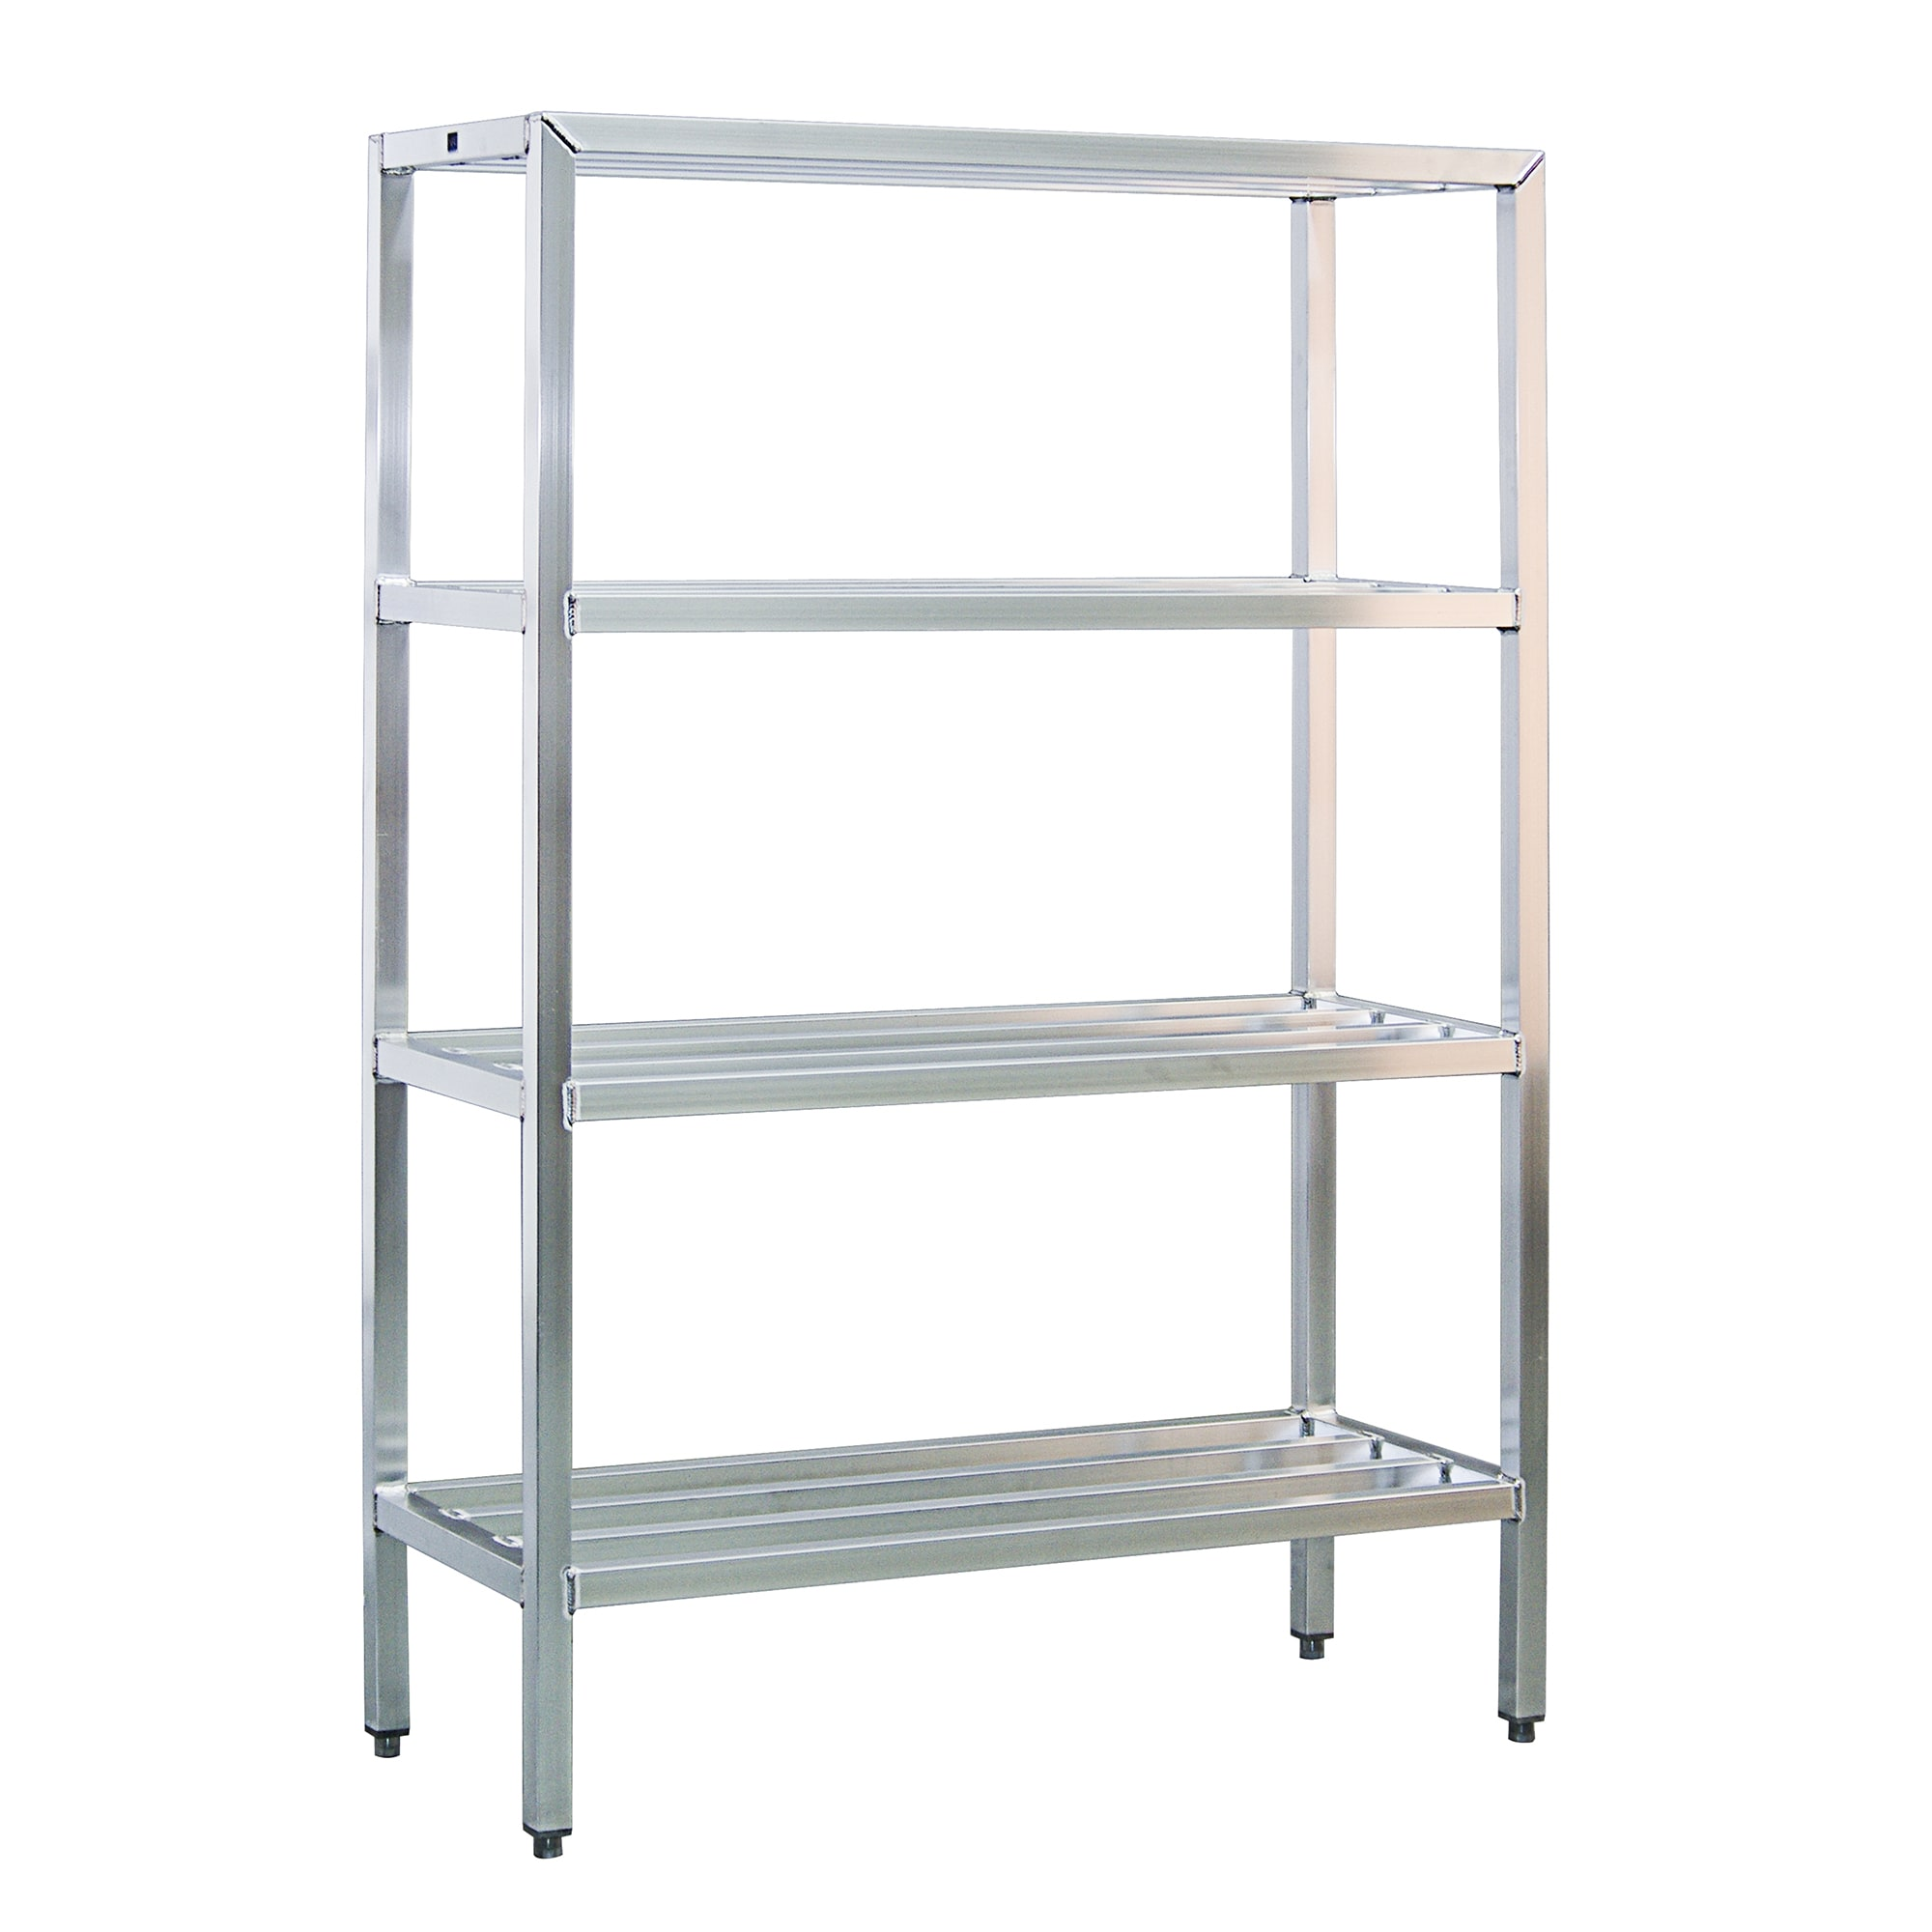 "New Age 1062 48"" Heavy-duty Shelving Unit w/ 1500-lb Capacity, Aluminum"